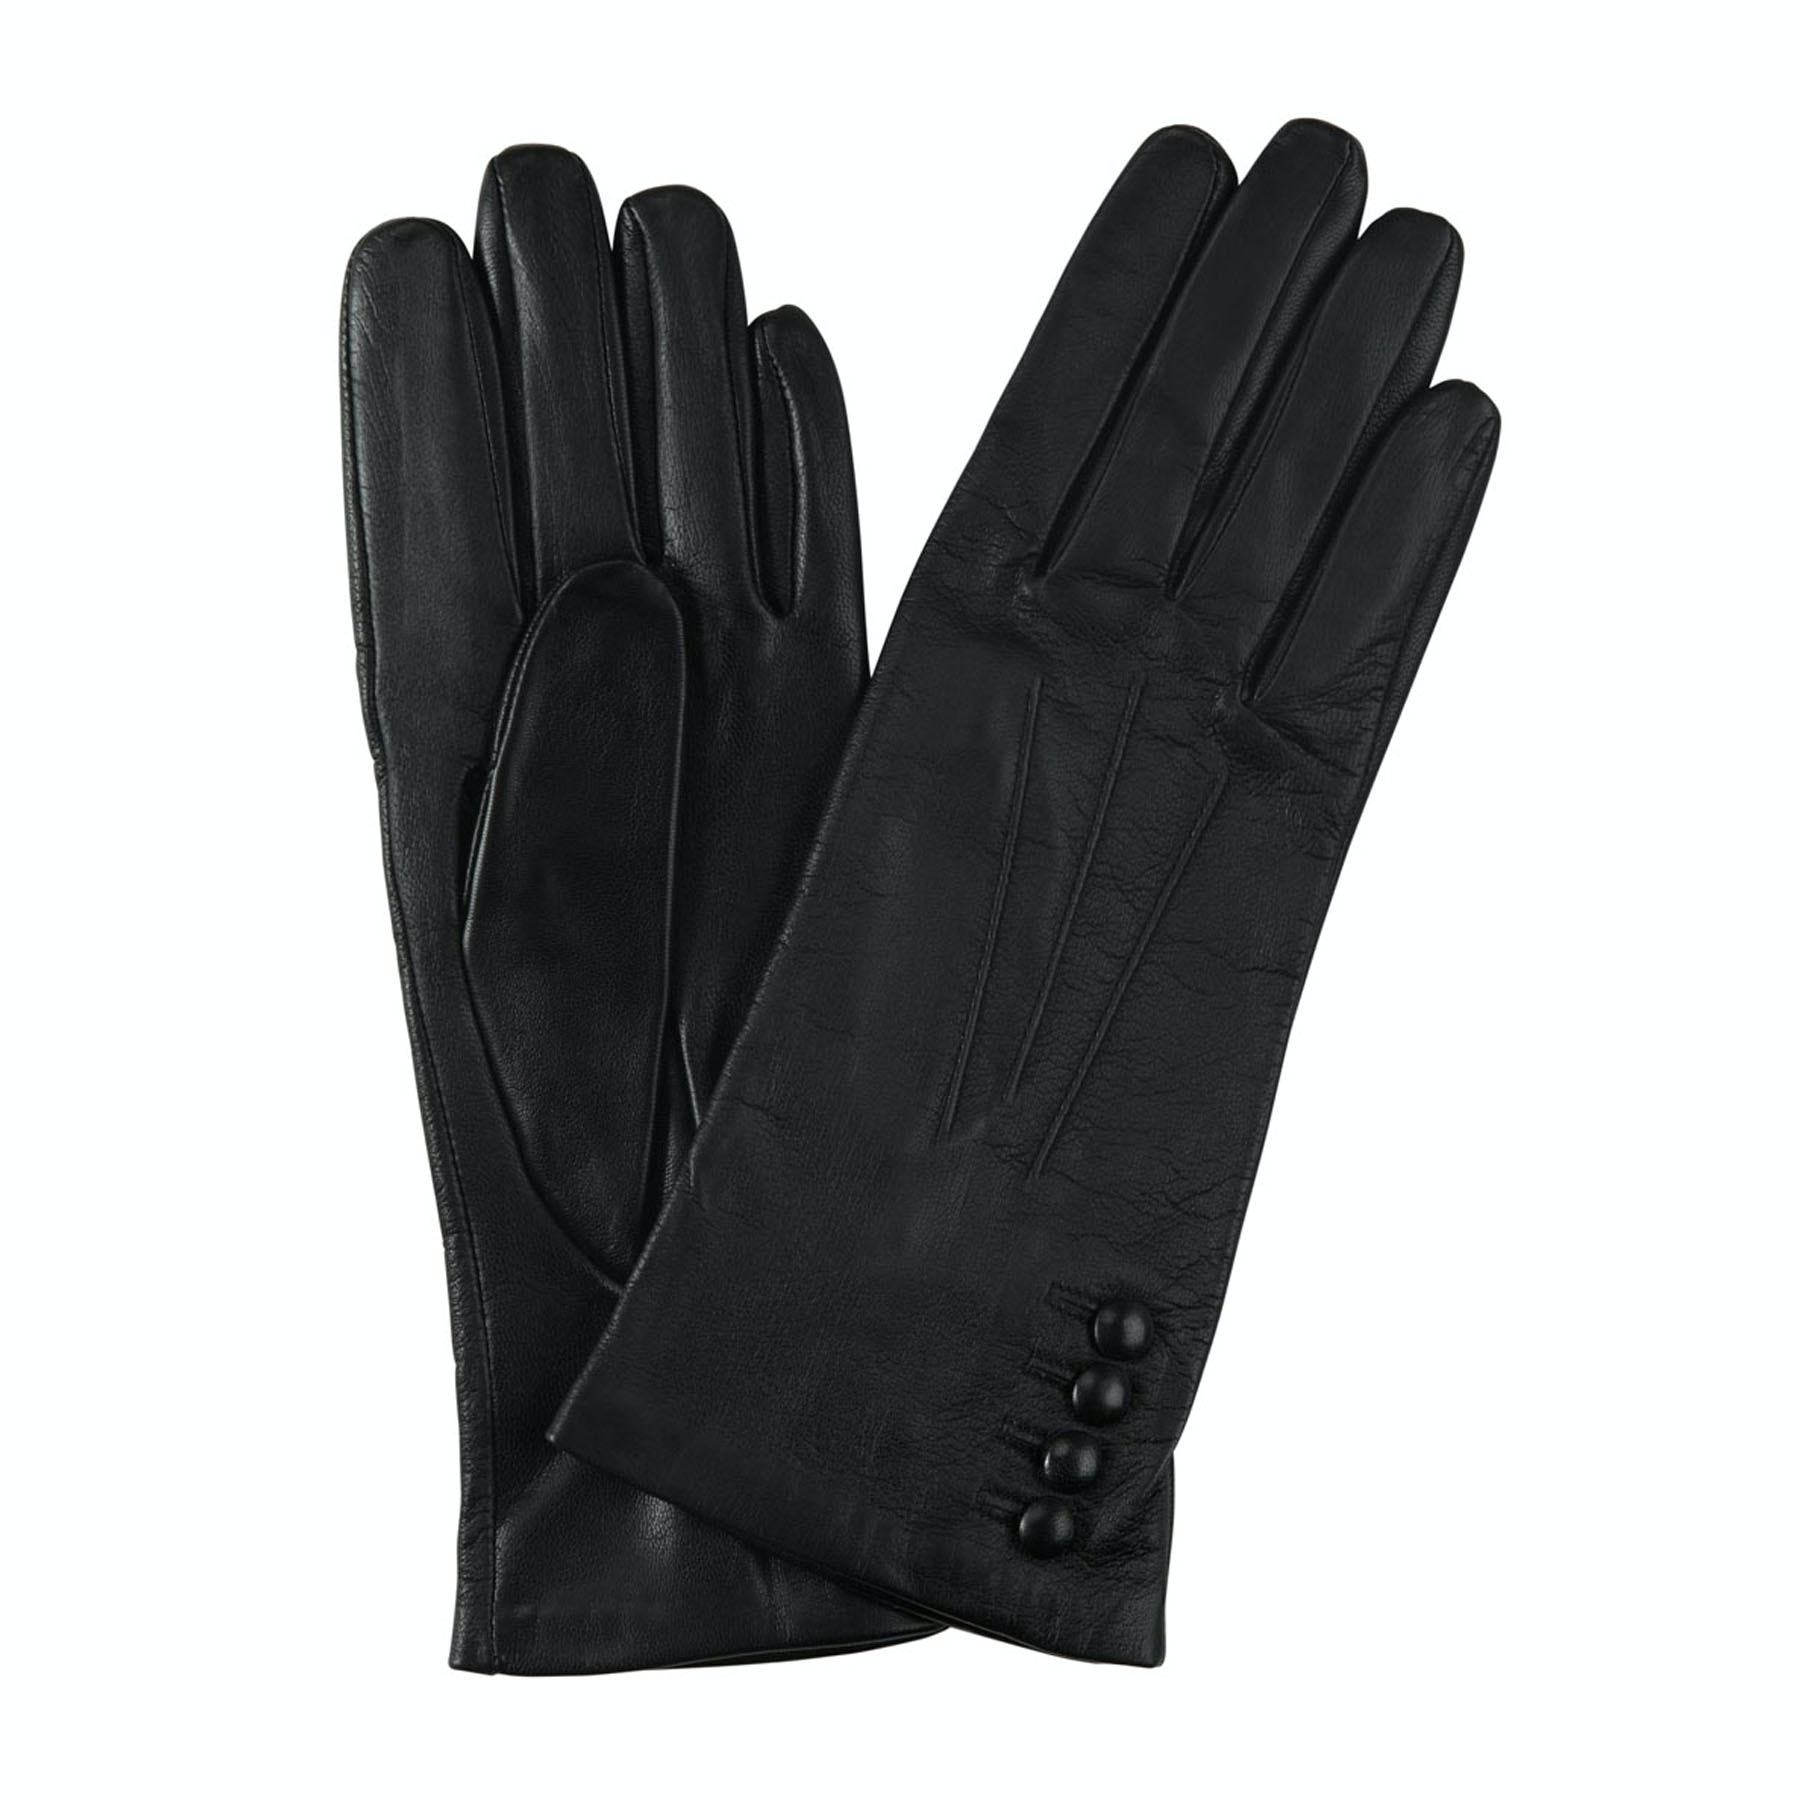 Keswick Silk lined leather gloves Dents